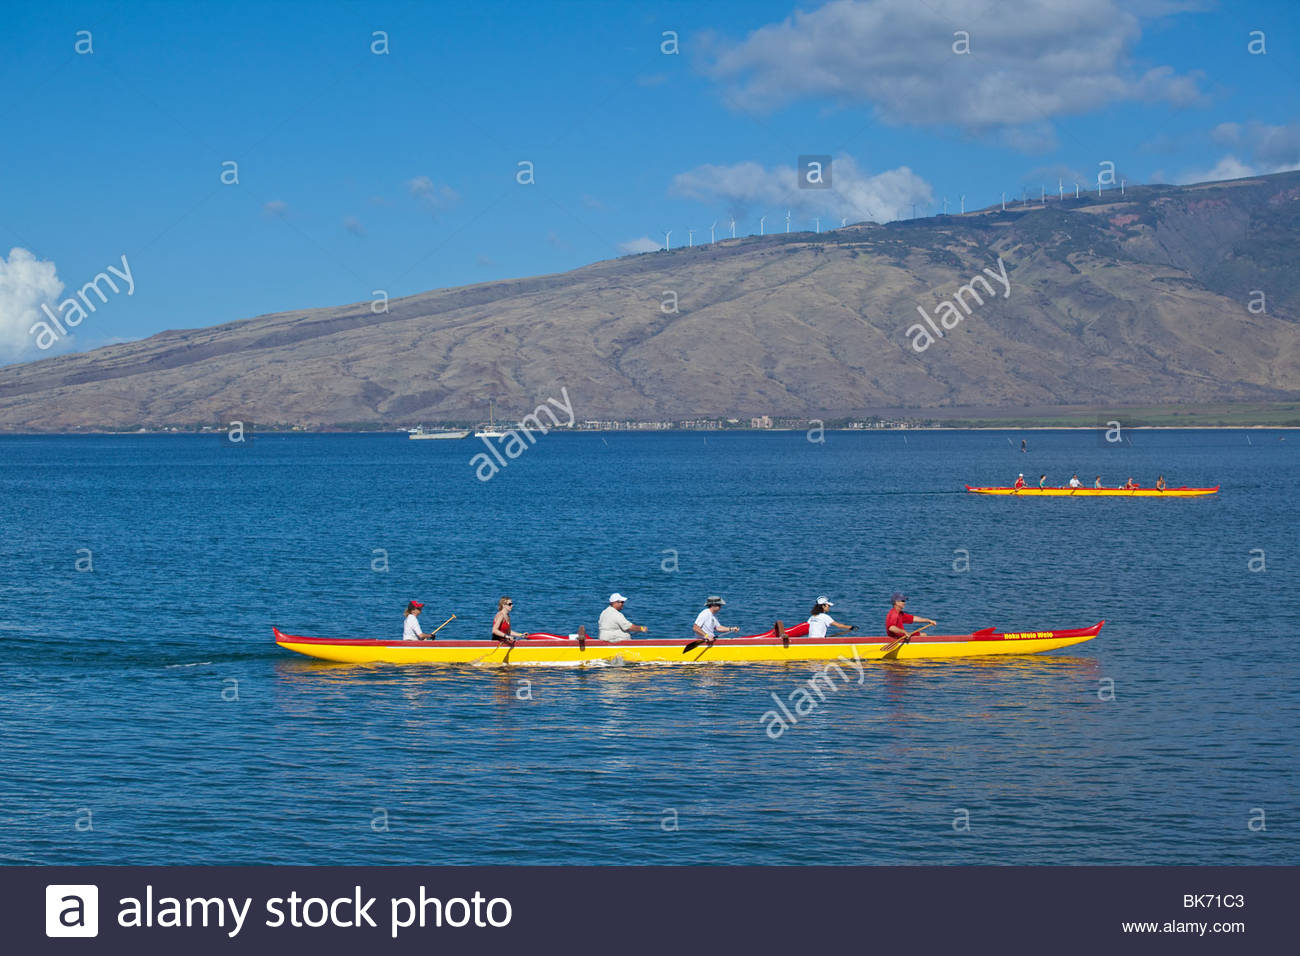 Outrigger canoe at the Kihei Canoe Club in Kihei on the island of Maui in the State of Hawaii USA - Stock Image